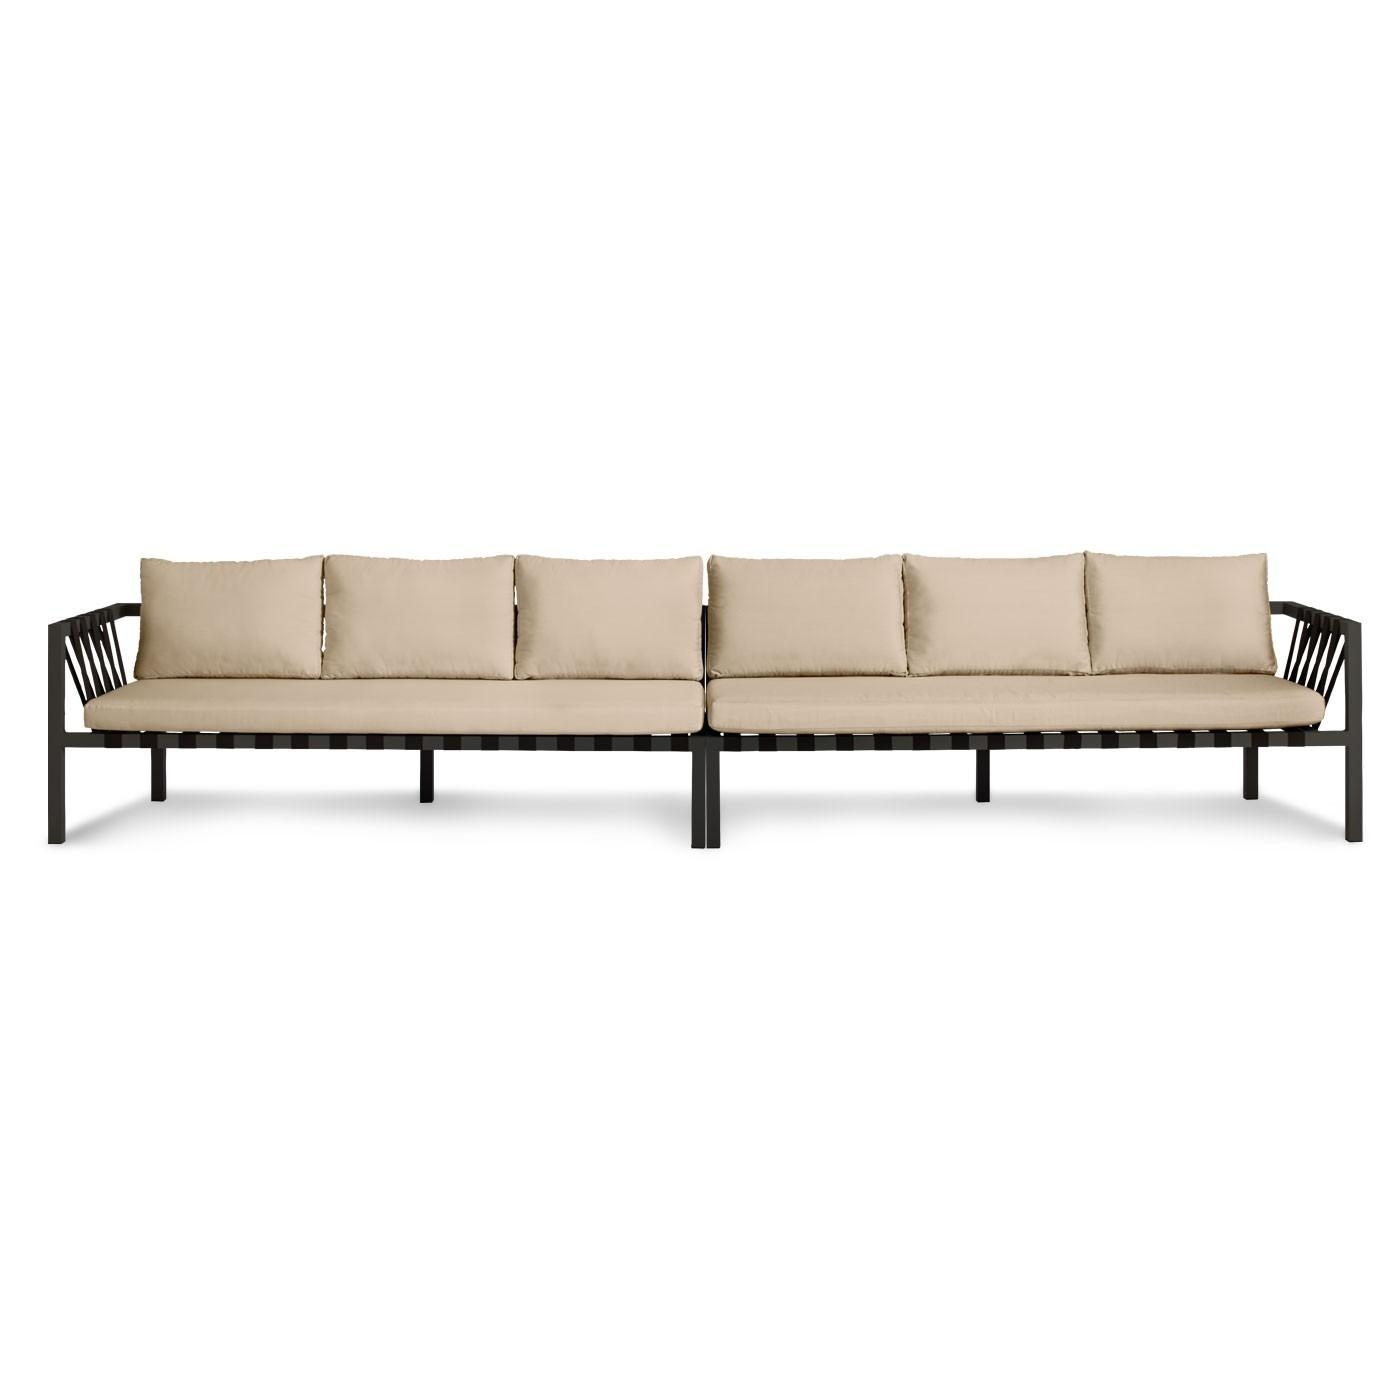 Jibe Extra Long Modern Outdoor Sectional Sofa | Blu Dot Throughout Long Sectional Sofa With Chaise (Image 9 of 20)